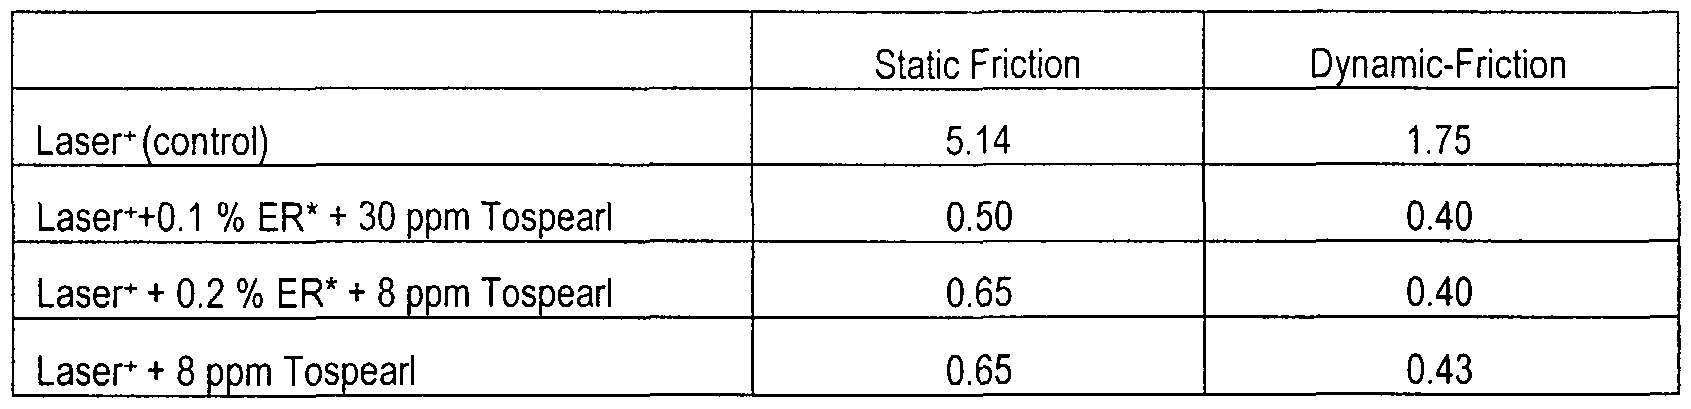 Wo2001072886a2 reduction of friction effect between - Dynamic coefficient of friction table ...